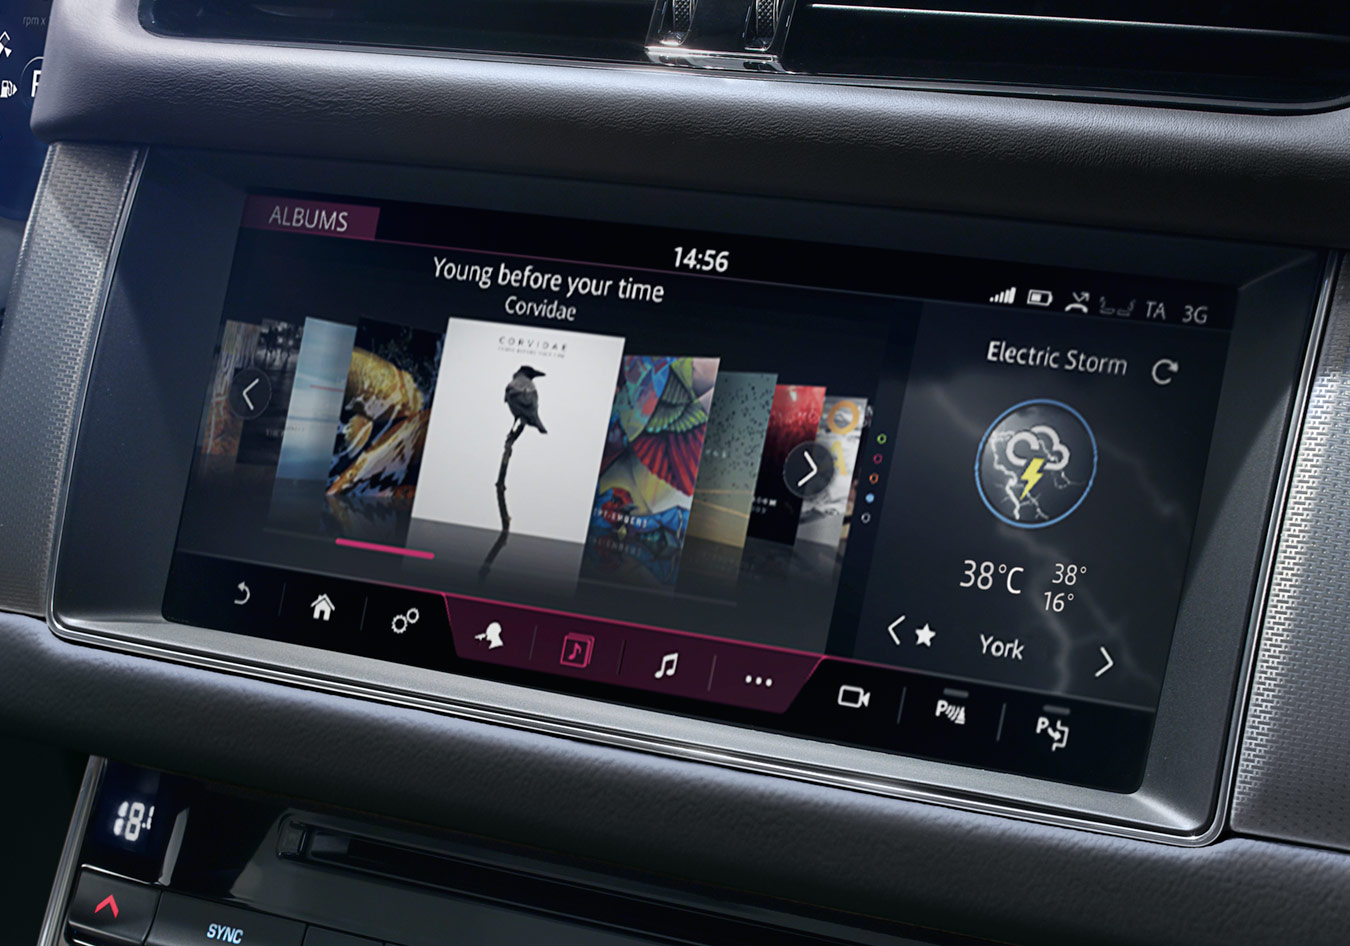 Close-up of touch screen display with INCONTROL infotainment options available on it